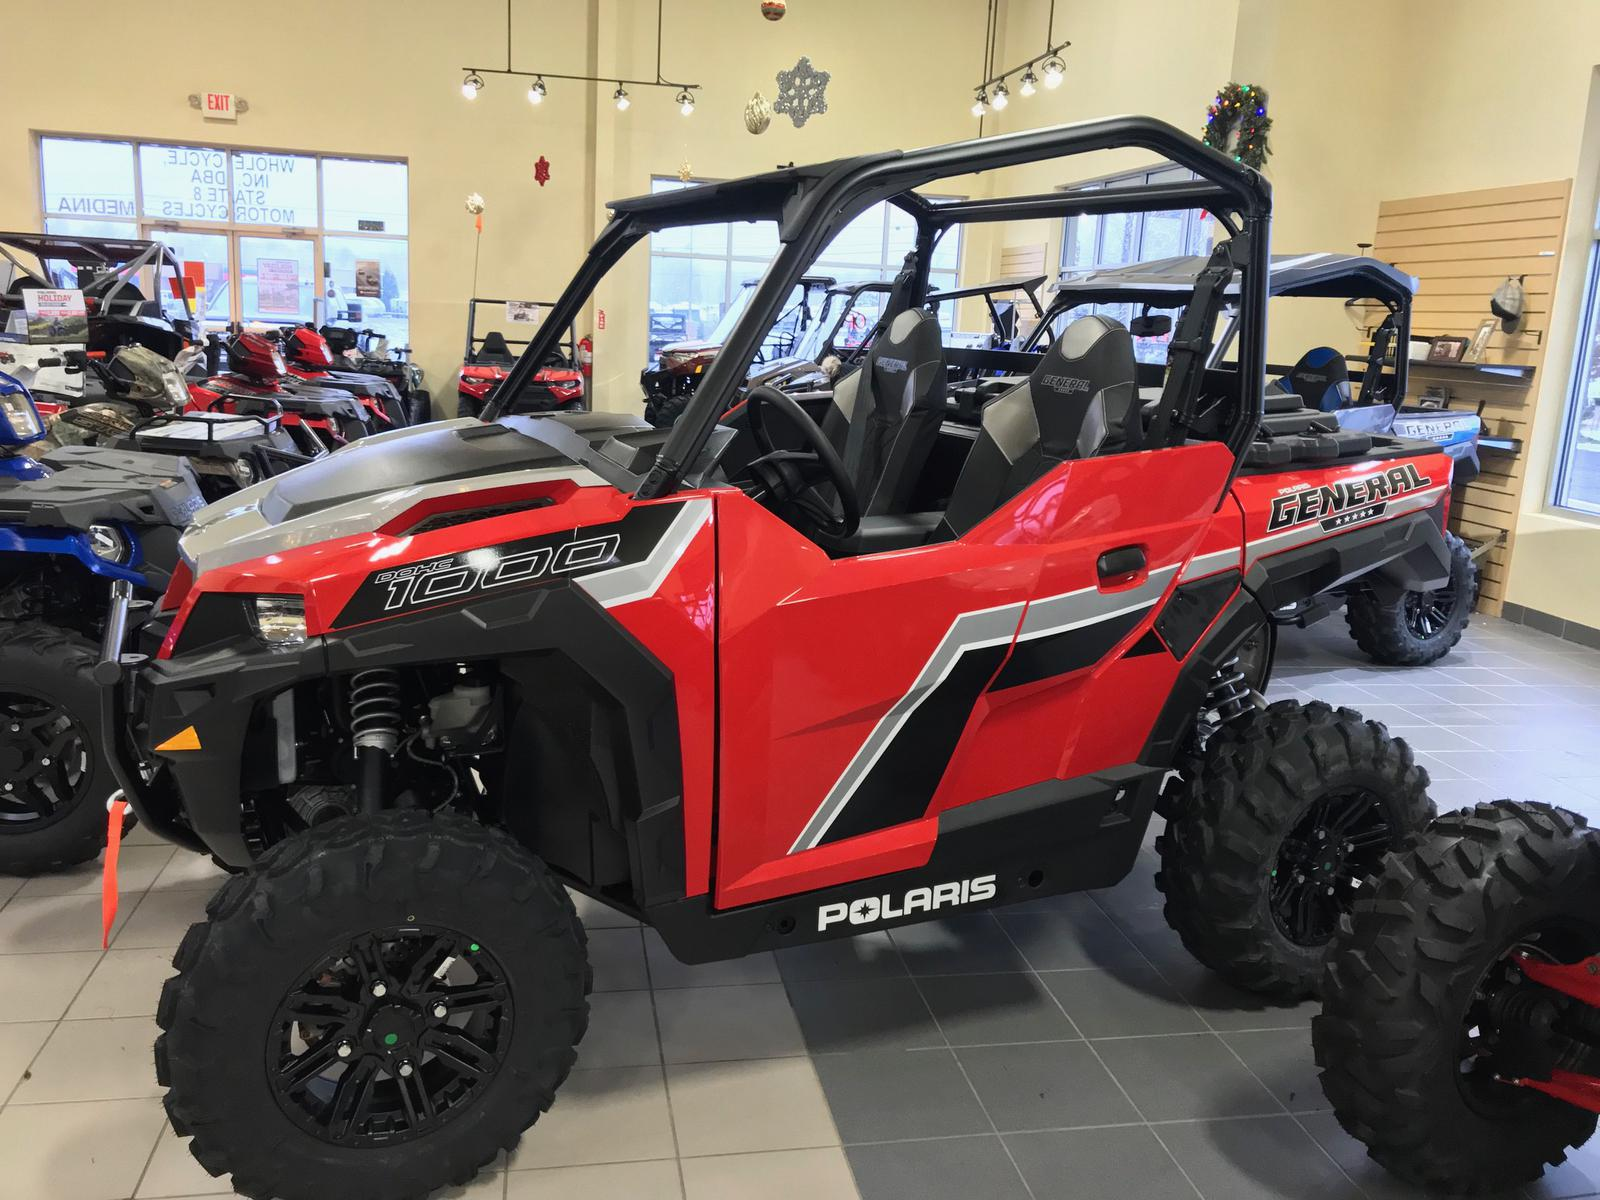 Inventory from Polaris Industries and CAZADOR STATE 8 MOTORCYCLES